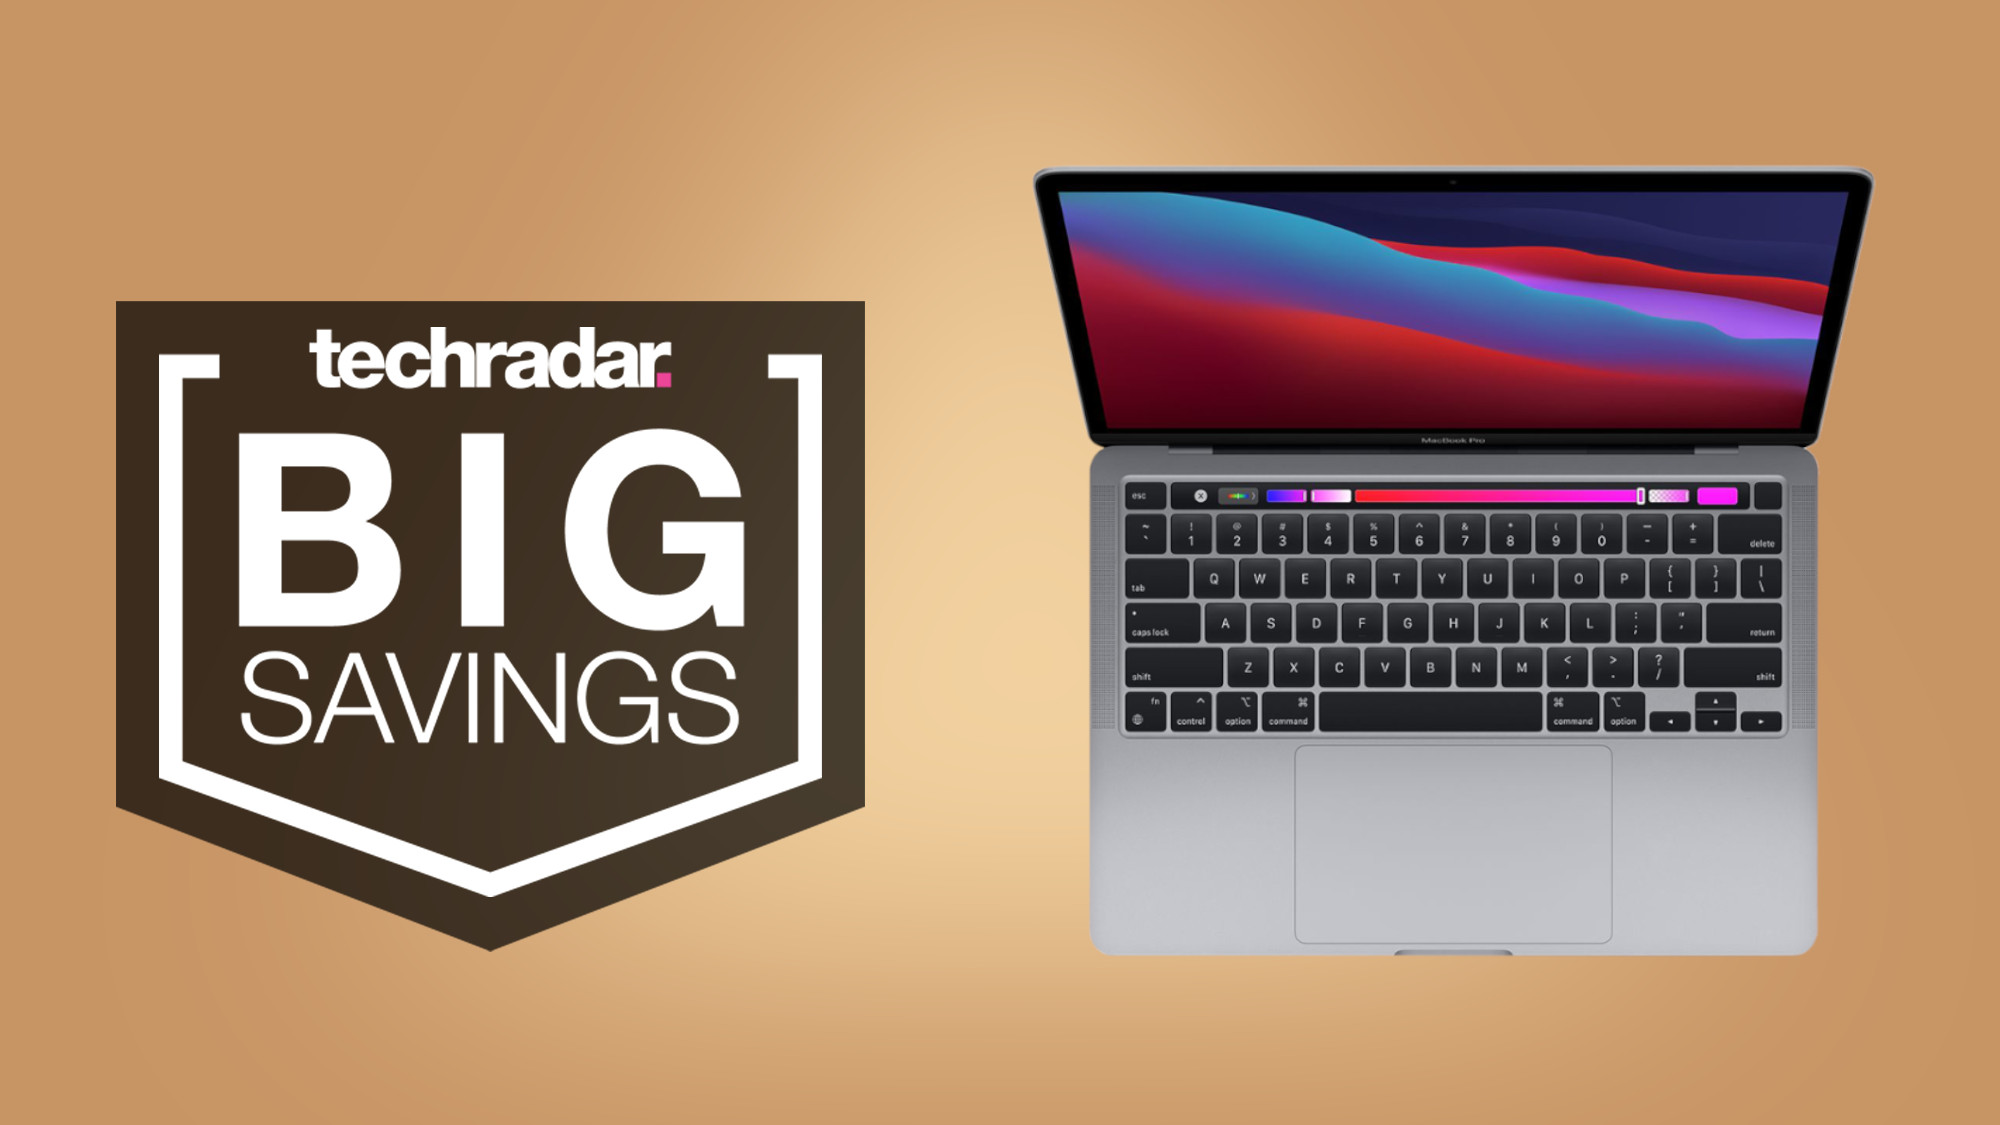 Apple MacBook Pro M1 deals at Amazon feature lowest price yet on the 512GB model thumbnail